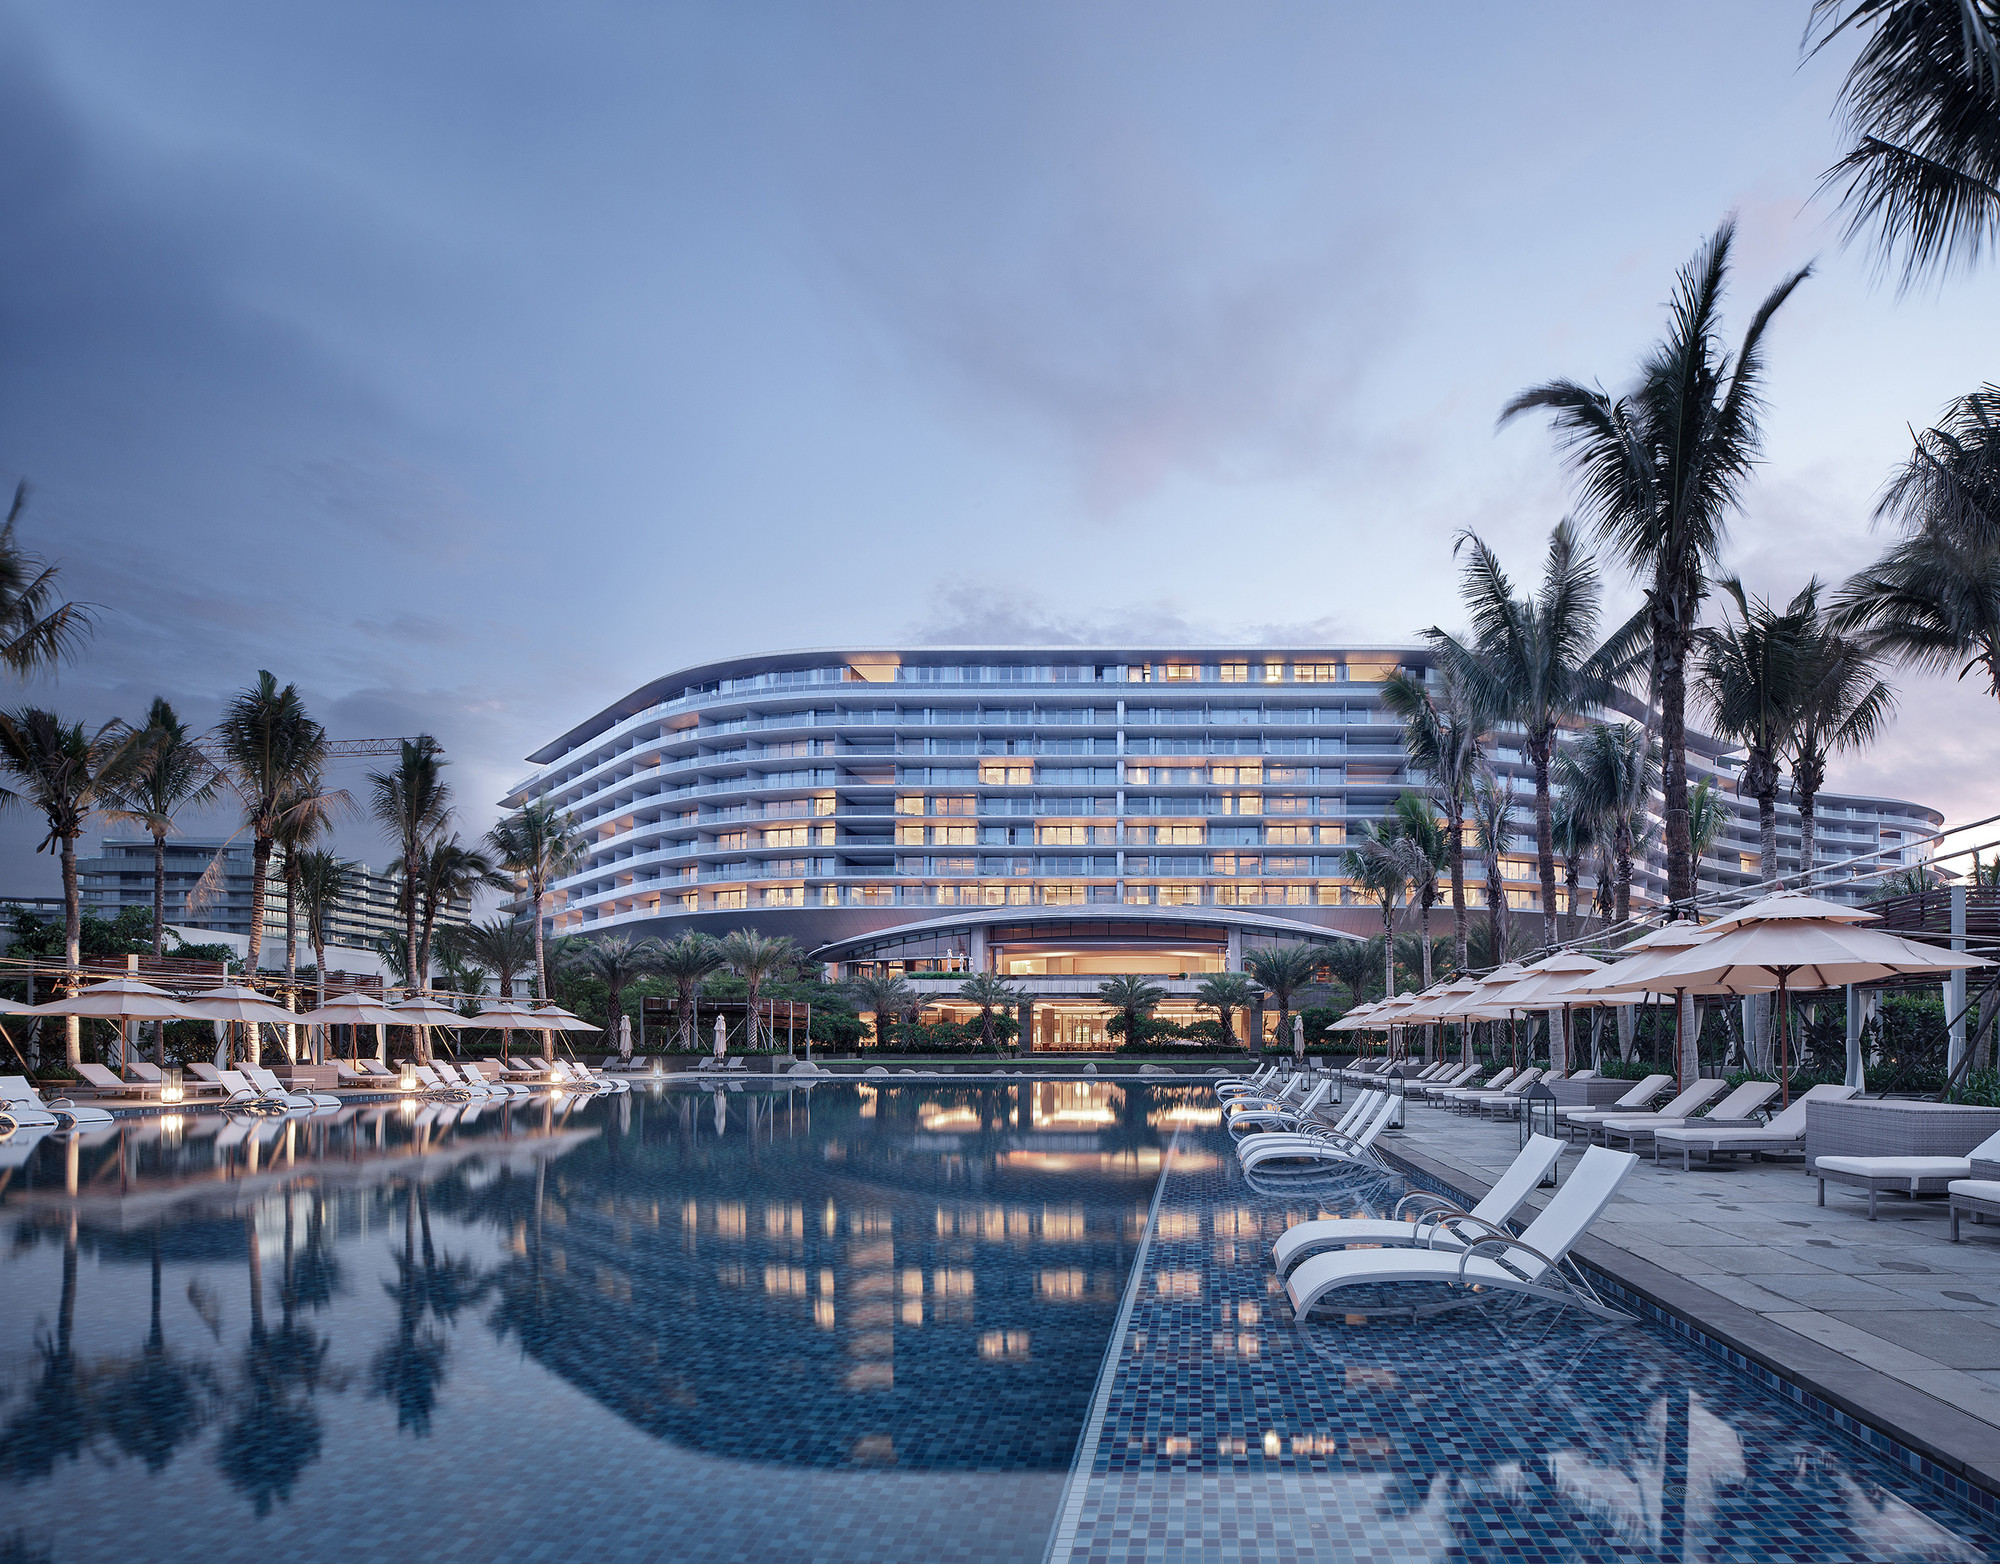 Westin Hotel Blue Bay Resort Hainan Architecture